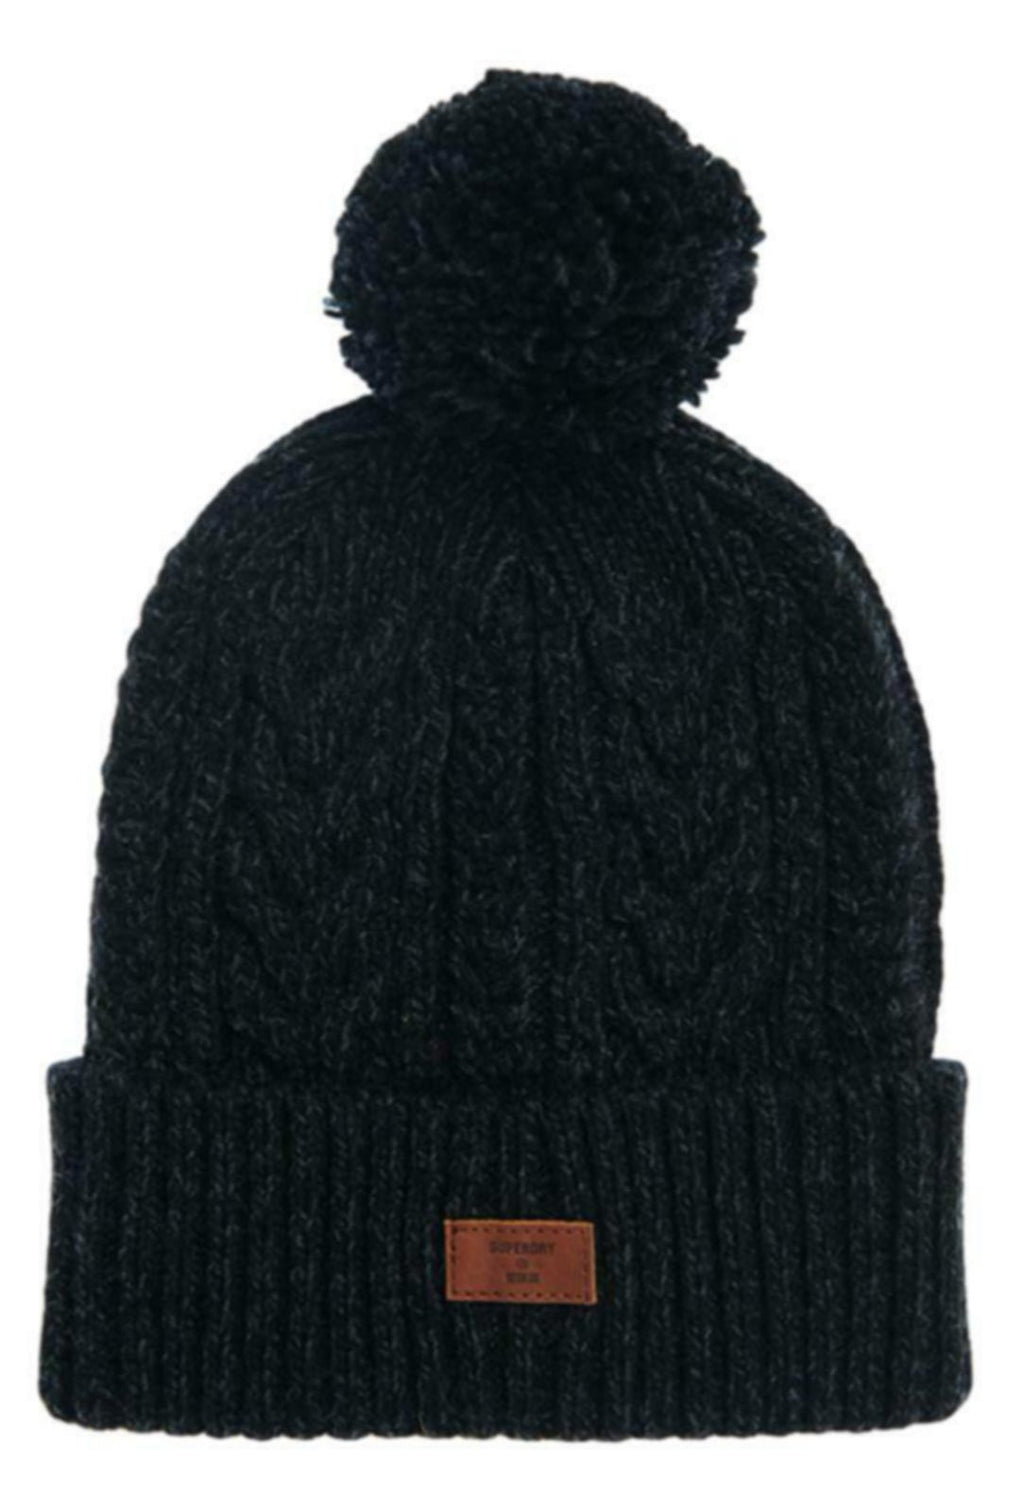 Superdry Jacob Beanie Hat Black